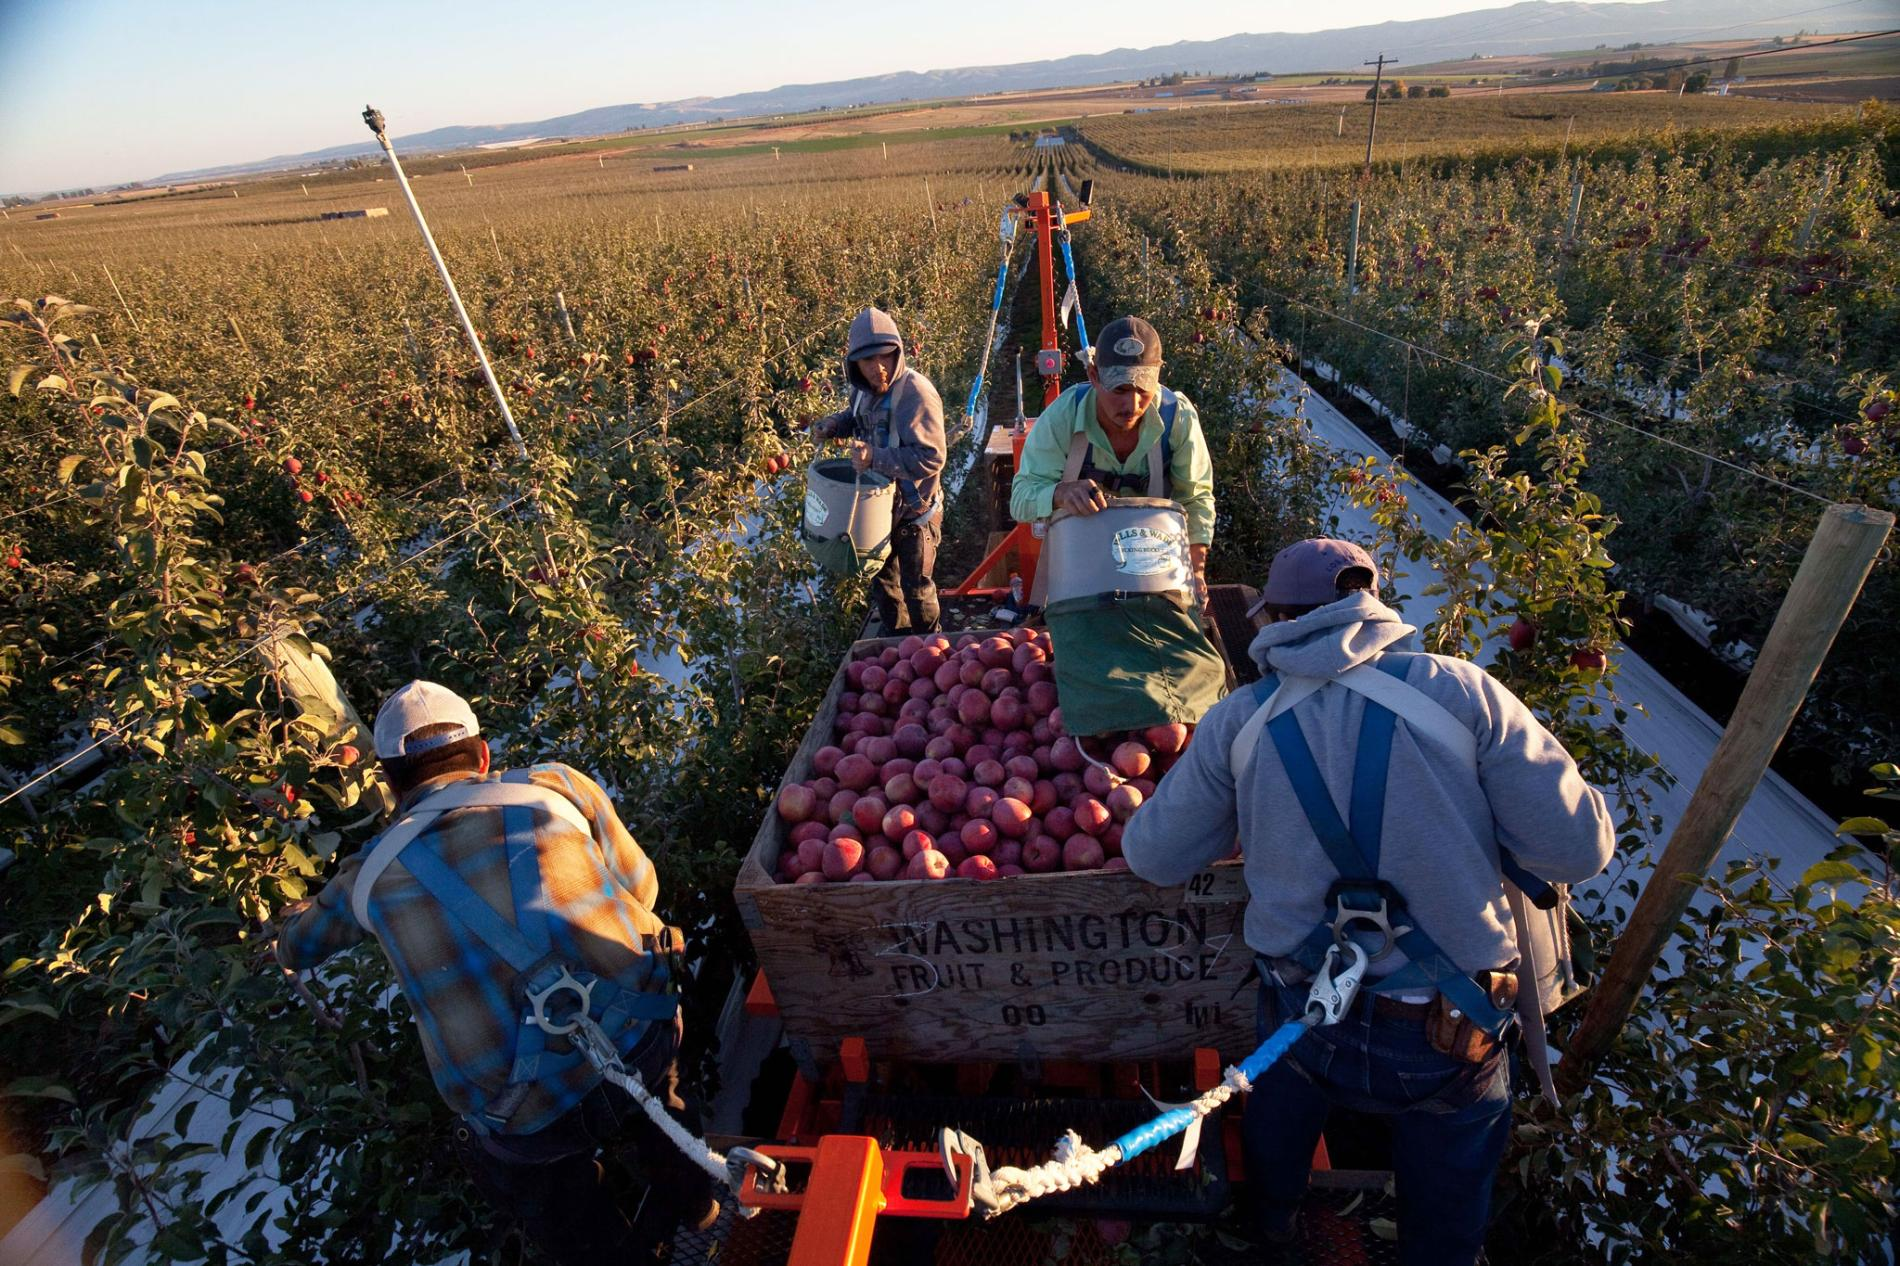 2 Related Stories To See Food Waste in a New Way, Start With Your Plate How to Farm a Forest—and Feed a Neighborhood Climate Change Resilience May Mean Planting More Trees Picture of workers picking apples View Images Workers stand on a hydraulic lift to pick fruit from the tips of trees. The lifts are equipped with floodlights to allow for night harvesting, so fruit can be picked at peak quality. Photograph by Ryan Bell